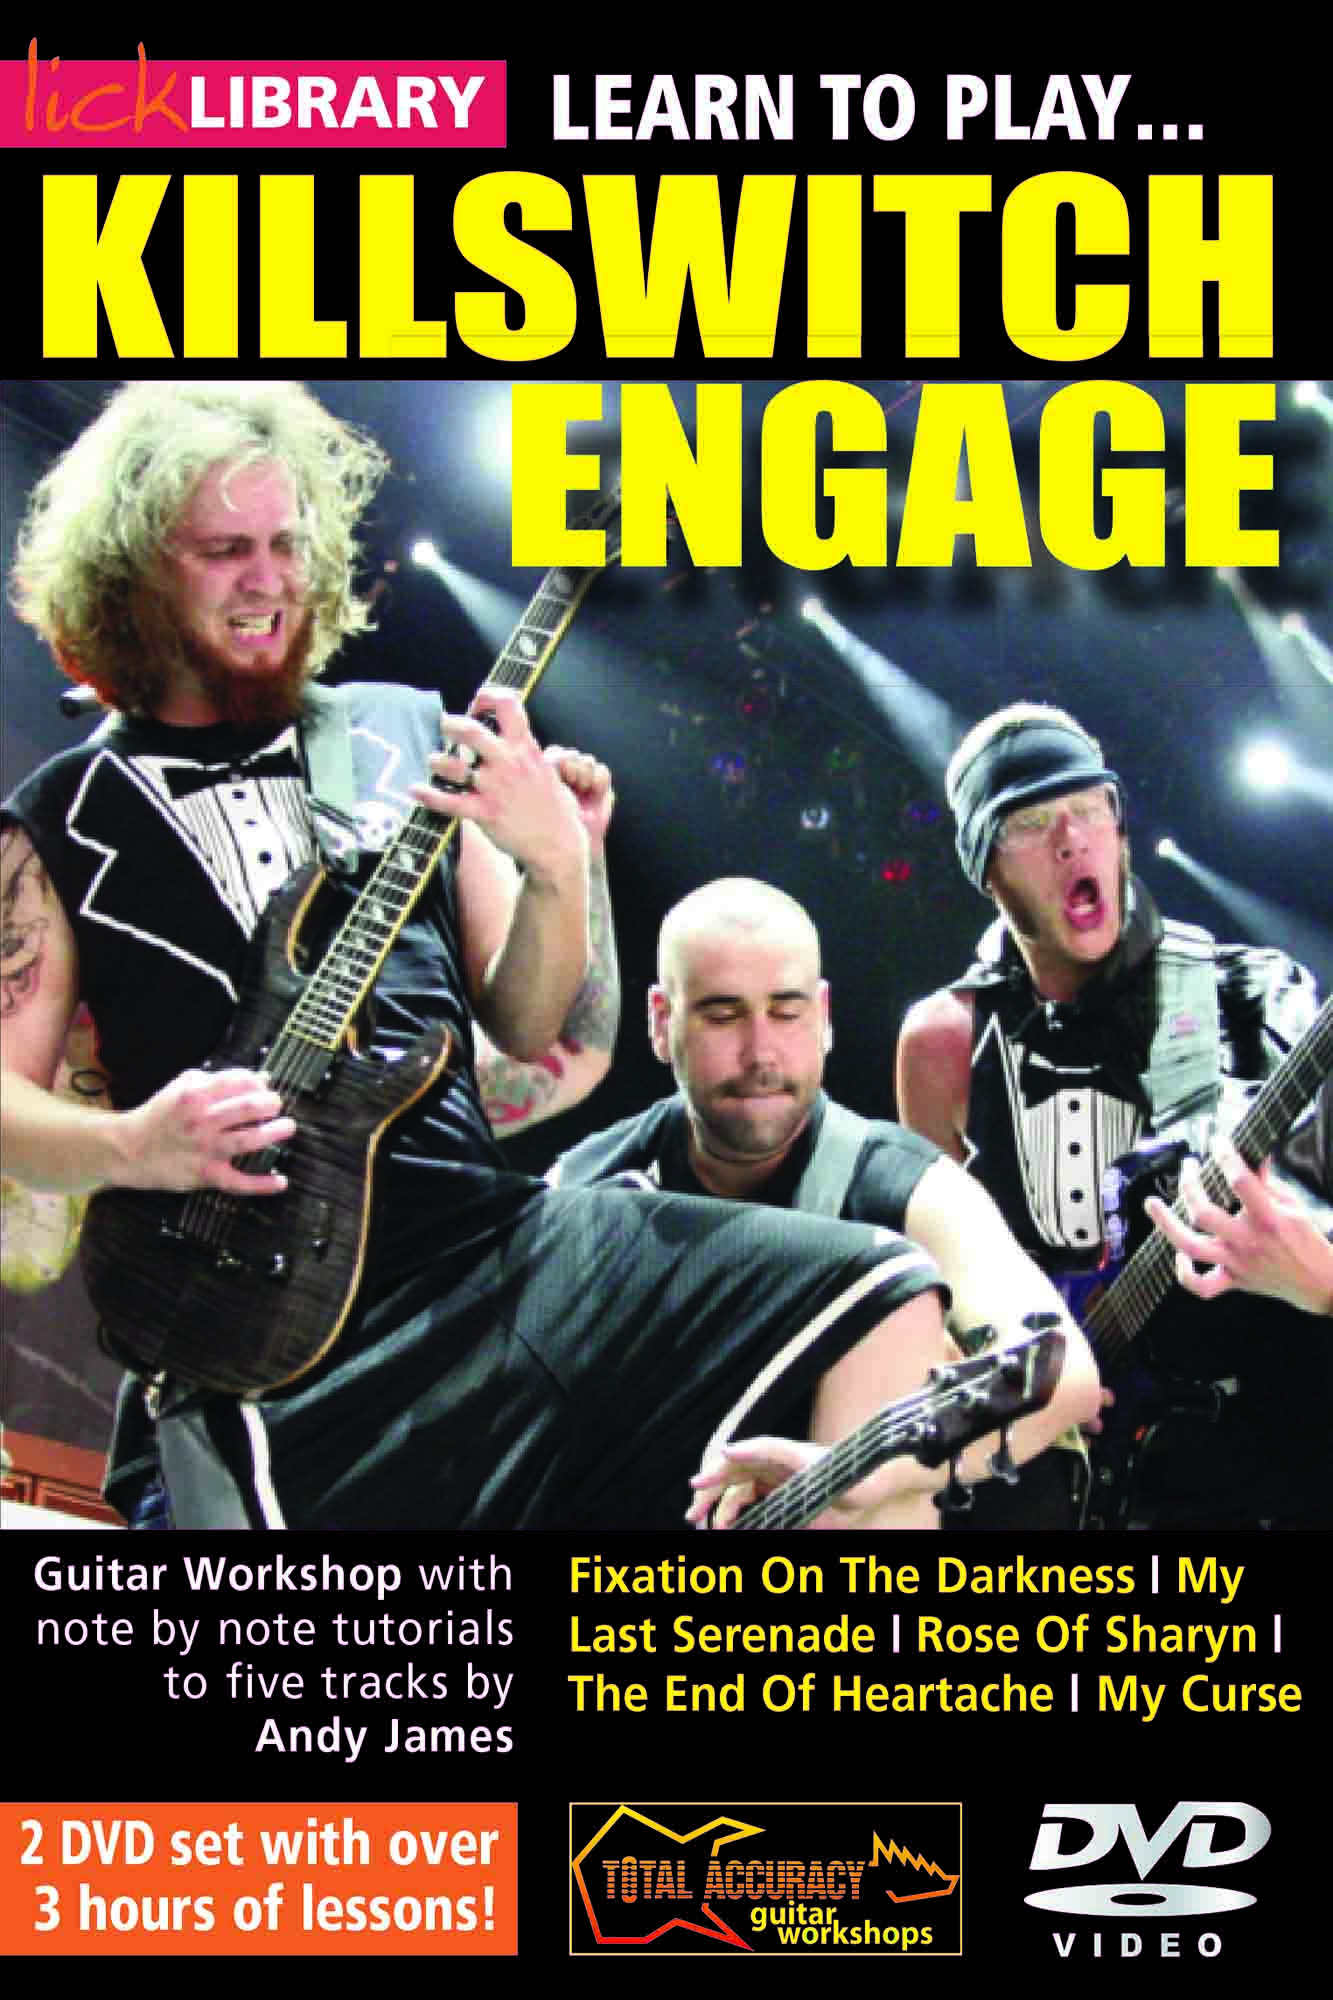 Learn To Play Killswitch Engage